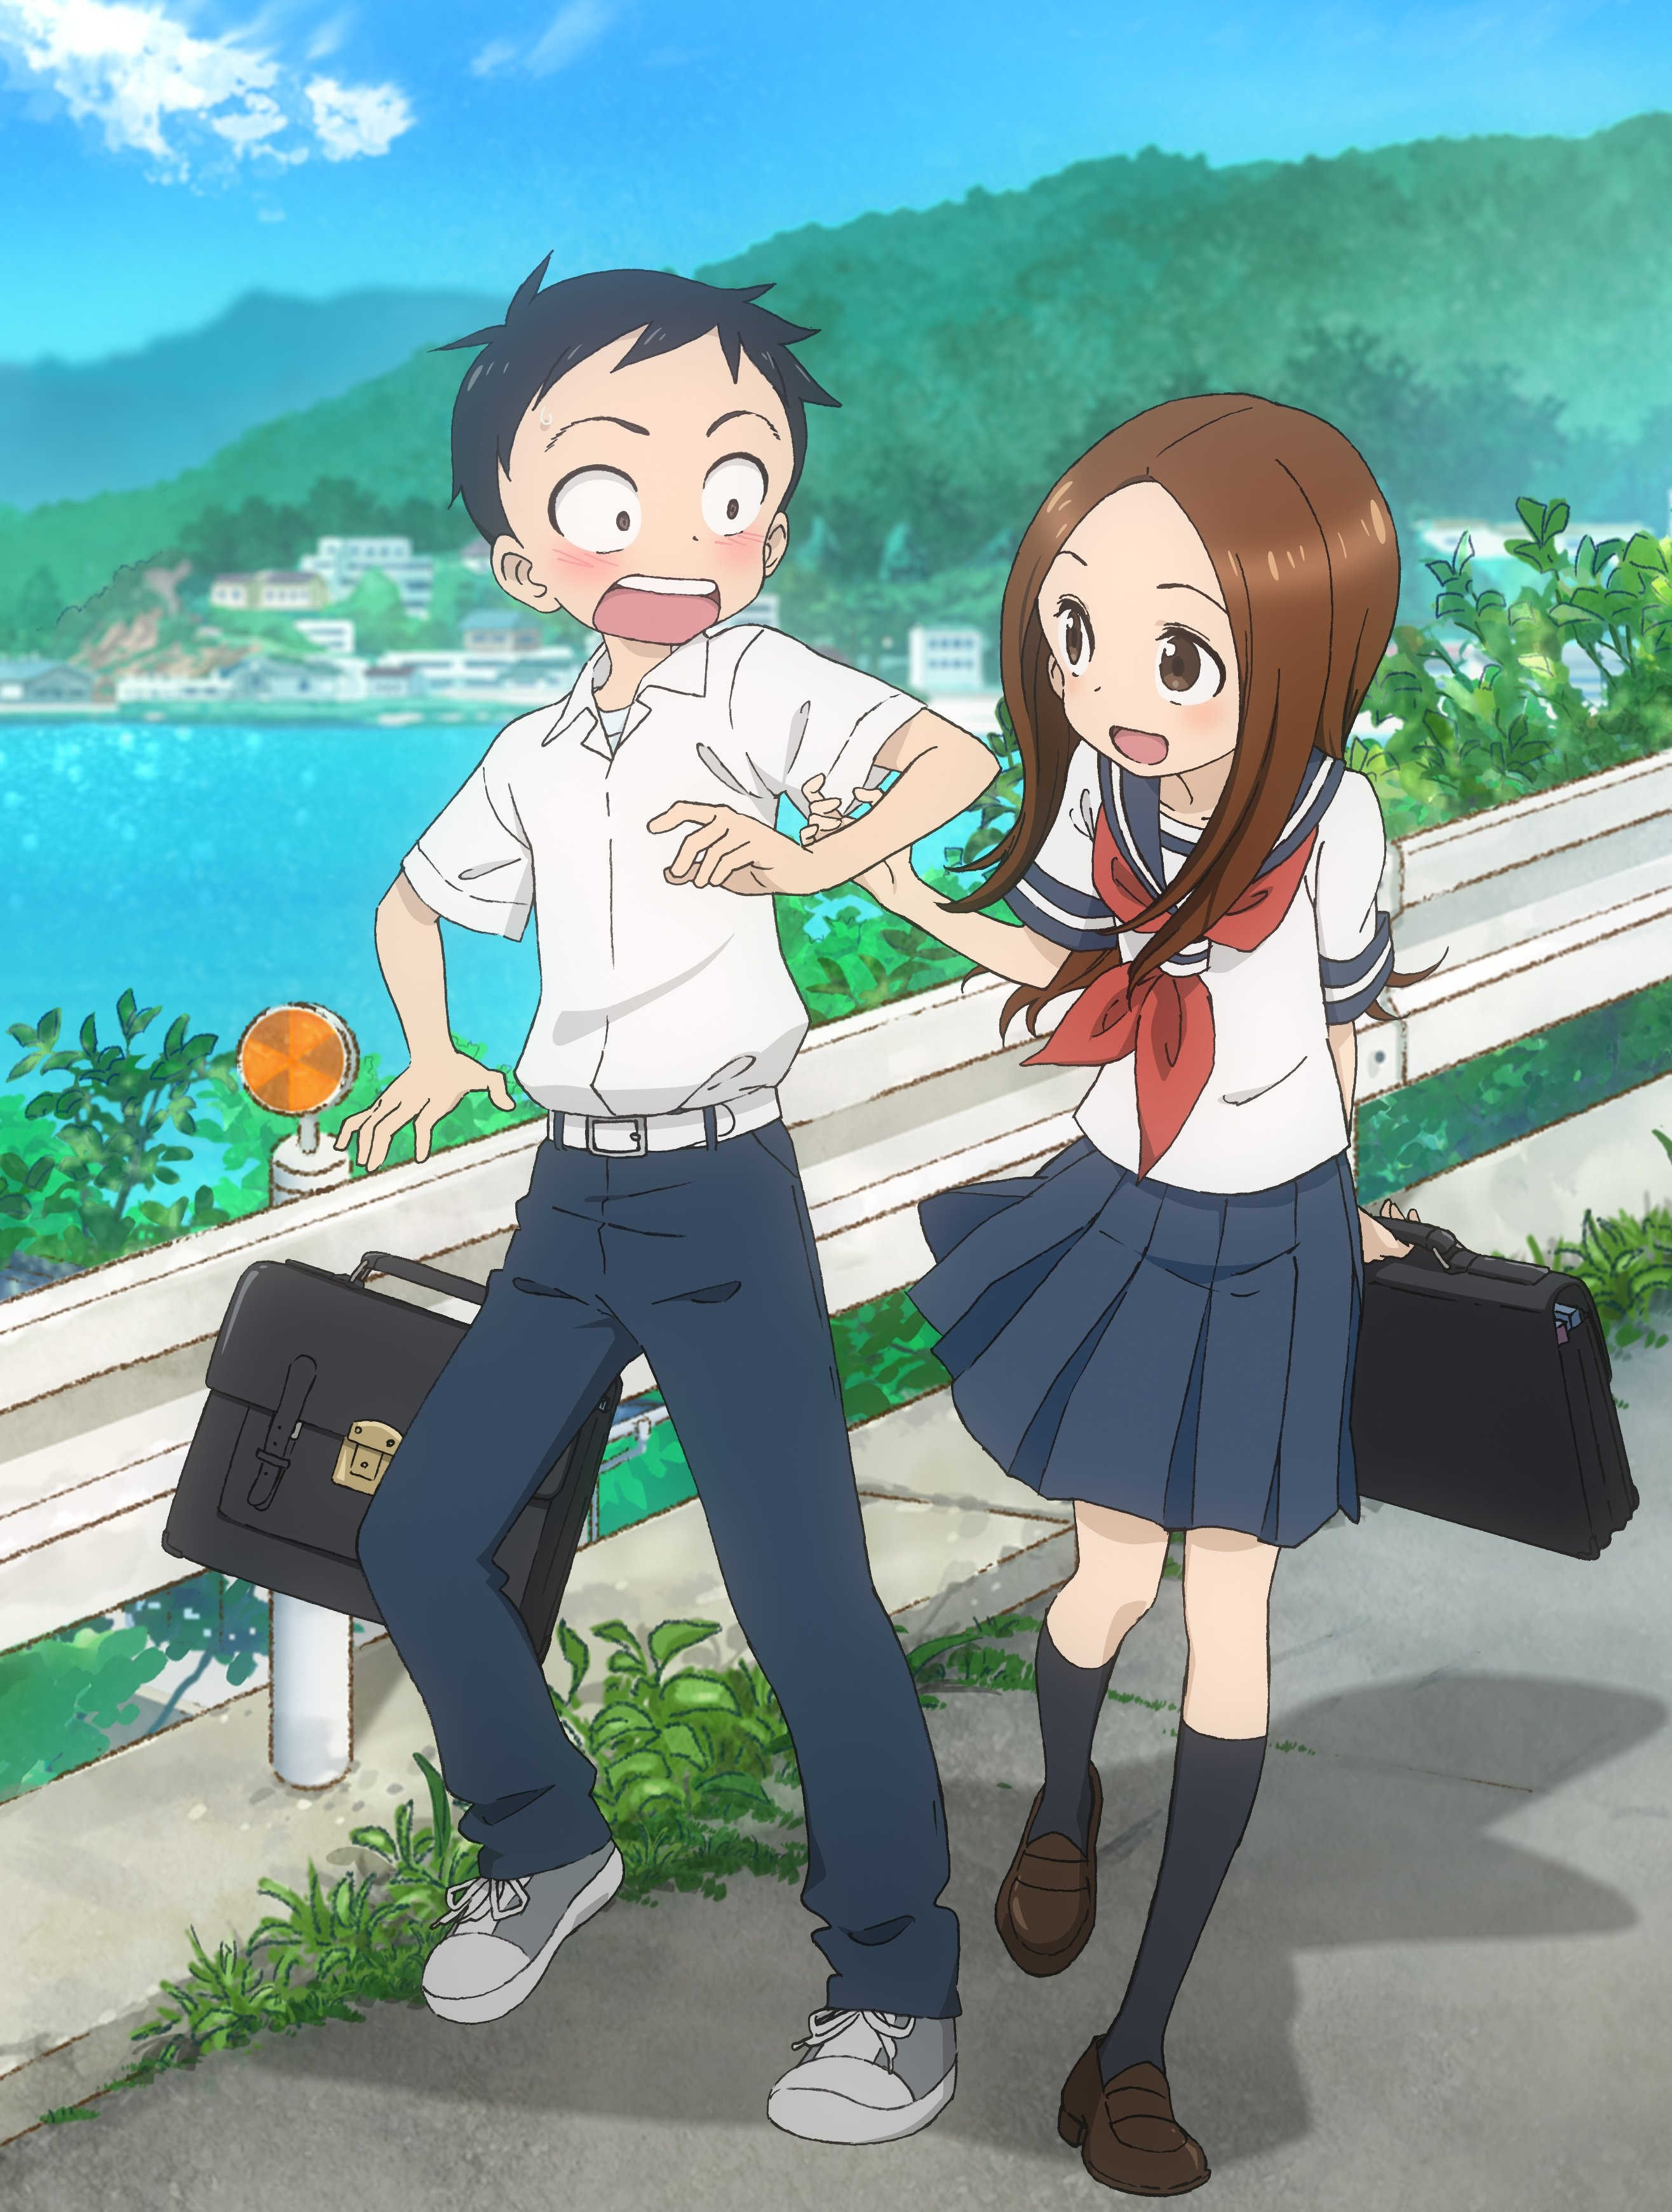 Some of my favorite romance comedy anime